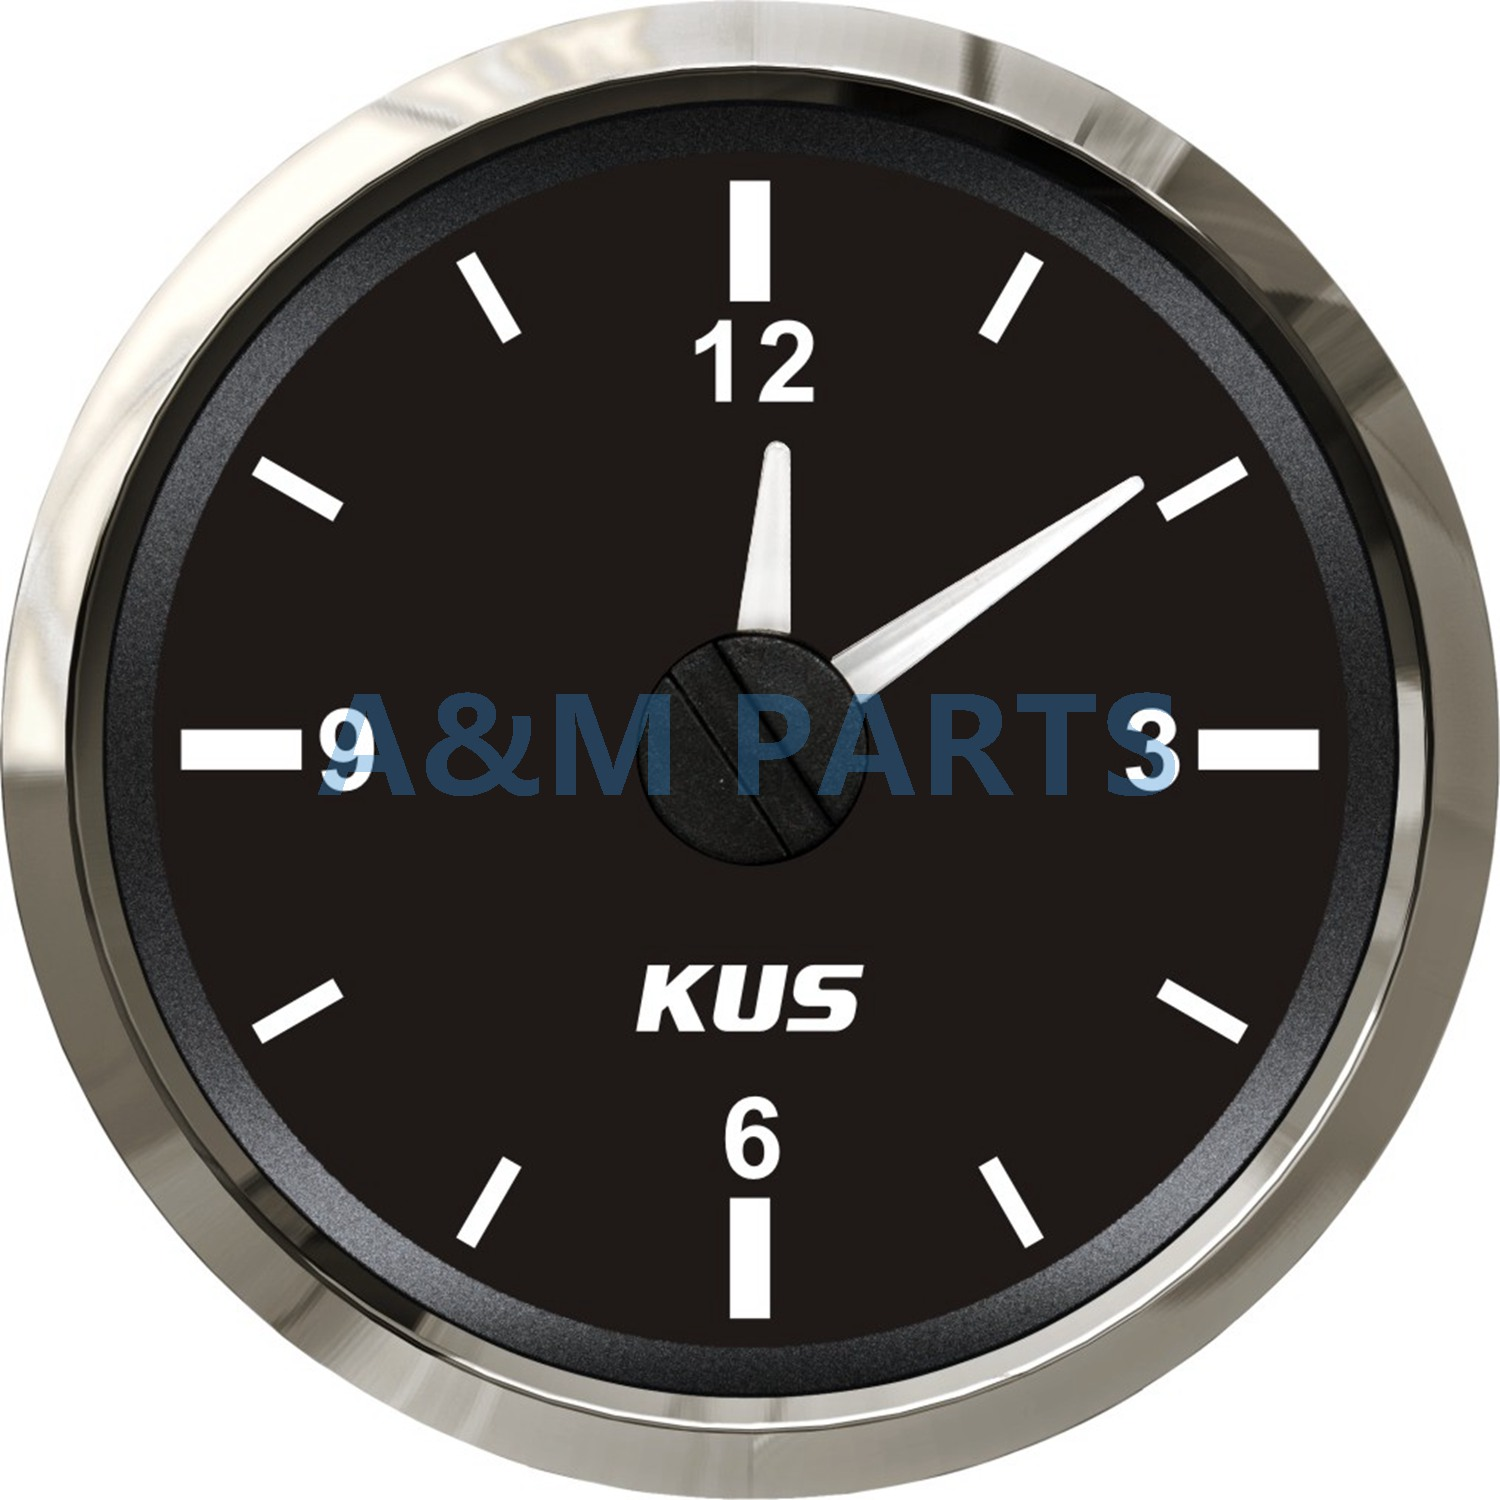 KUS Boat Hour Quartz Clock Gauge Waterproof Marine Car RV Clock Dial 12 Hour 12V/24V датчик kus 12v 24v